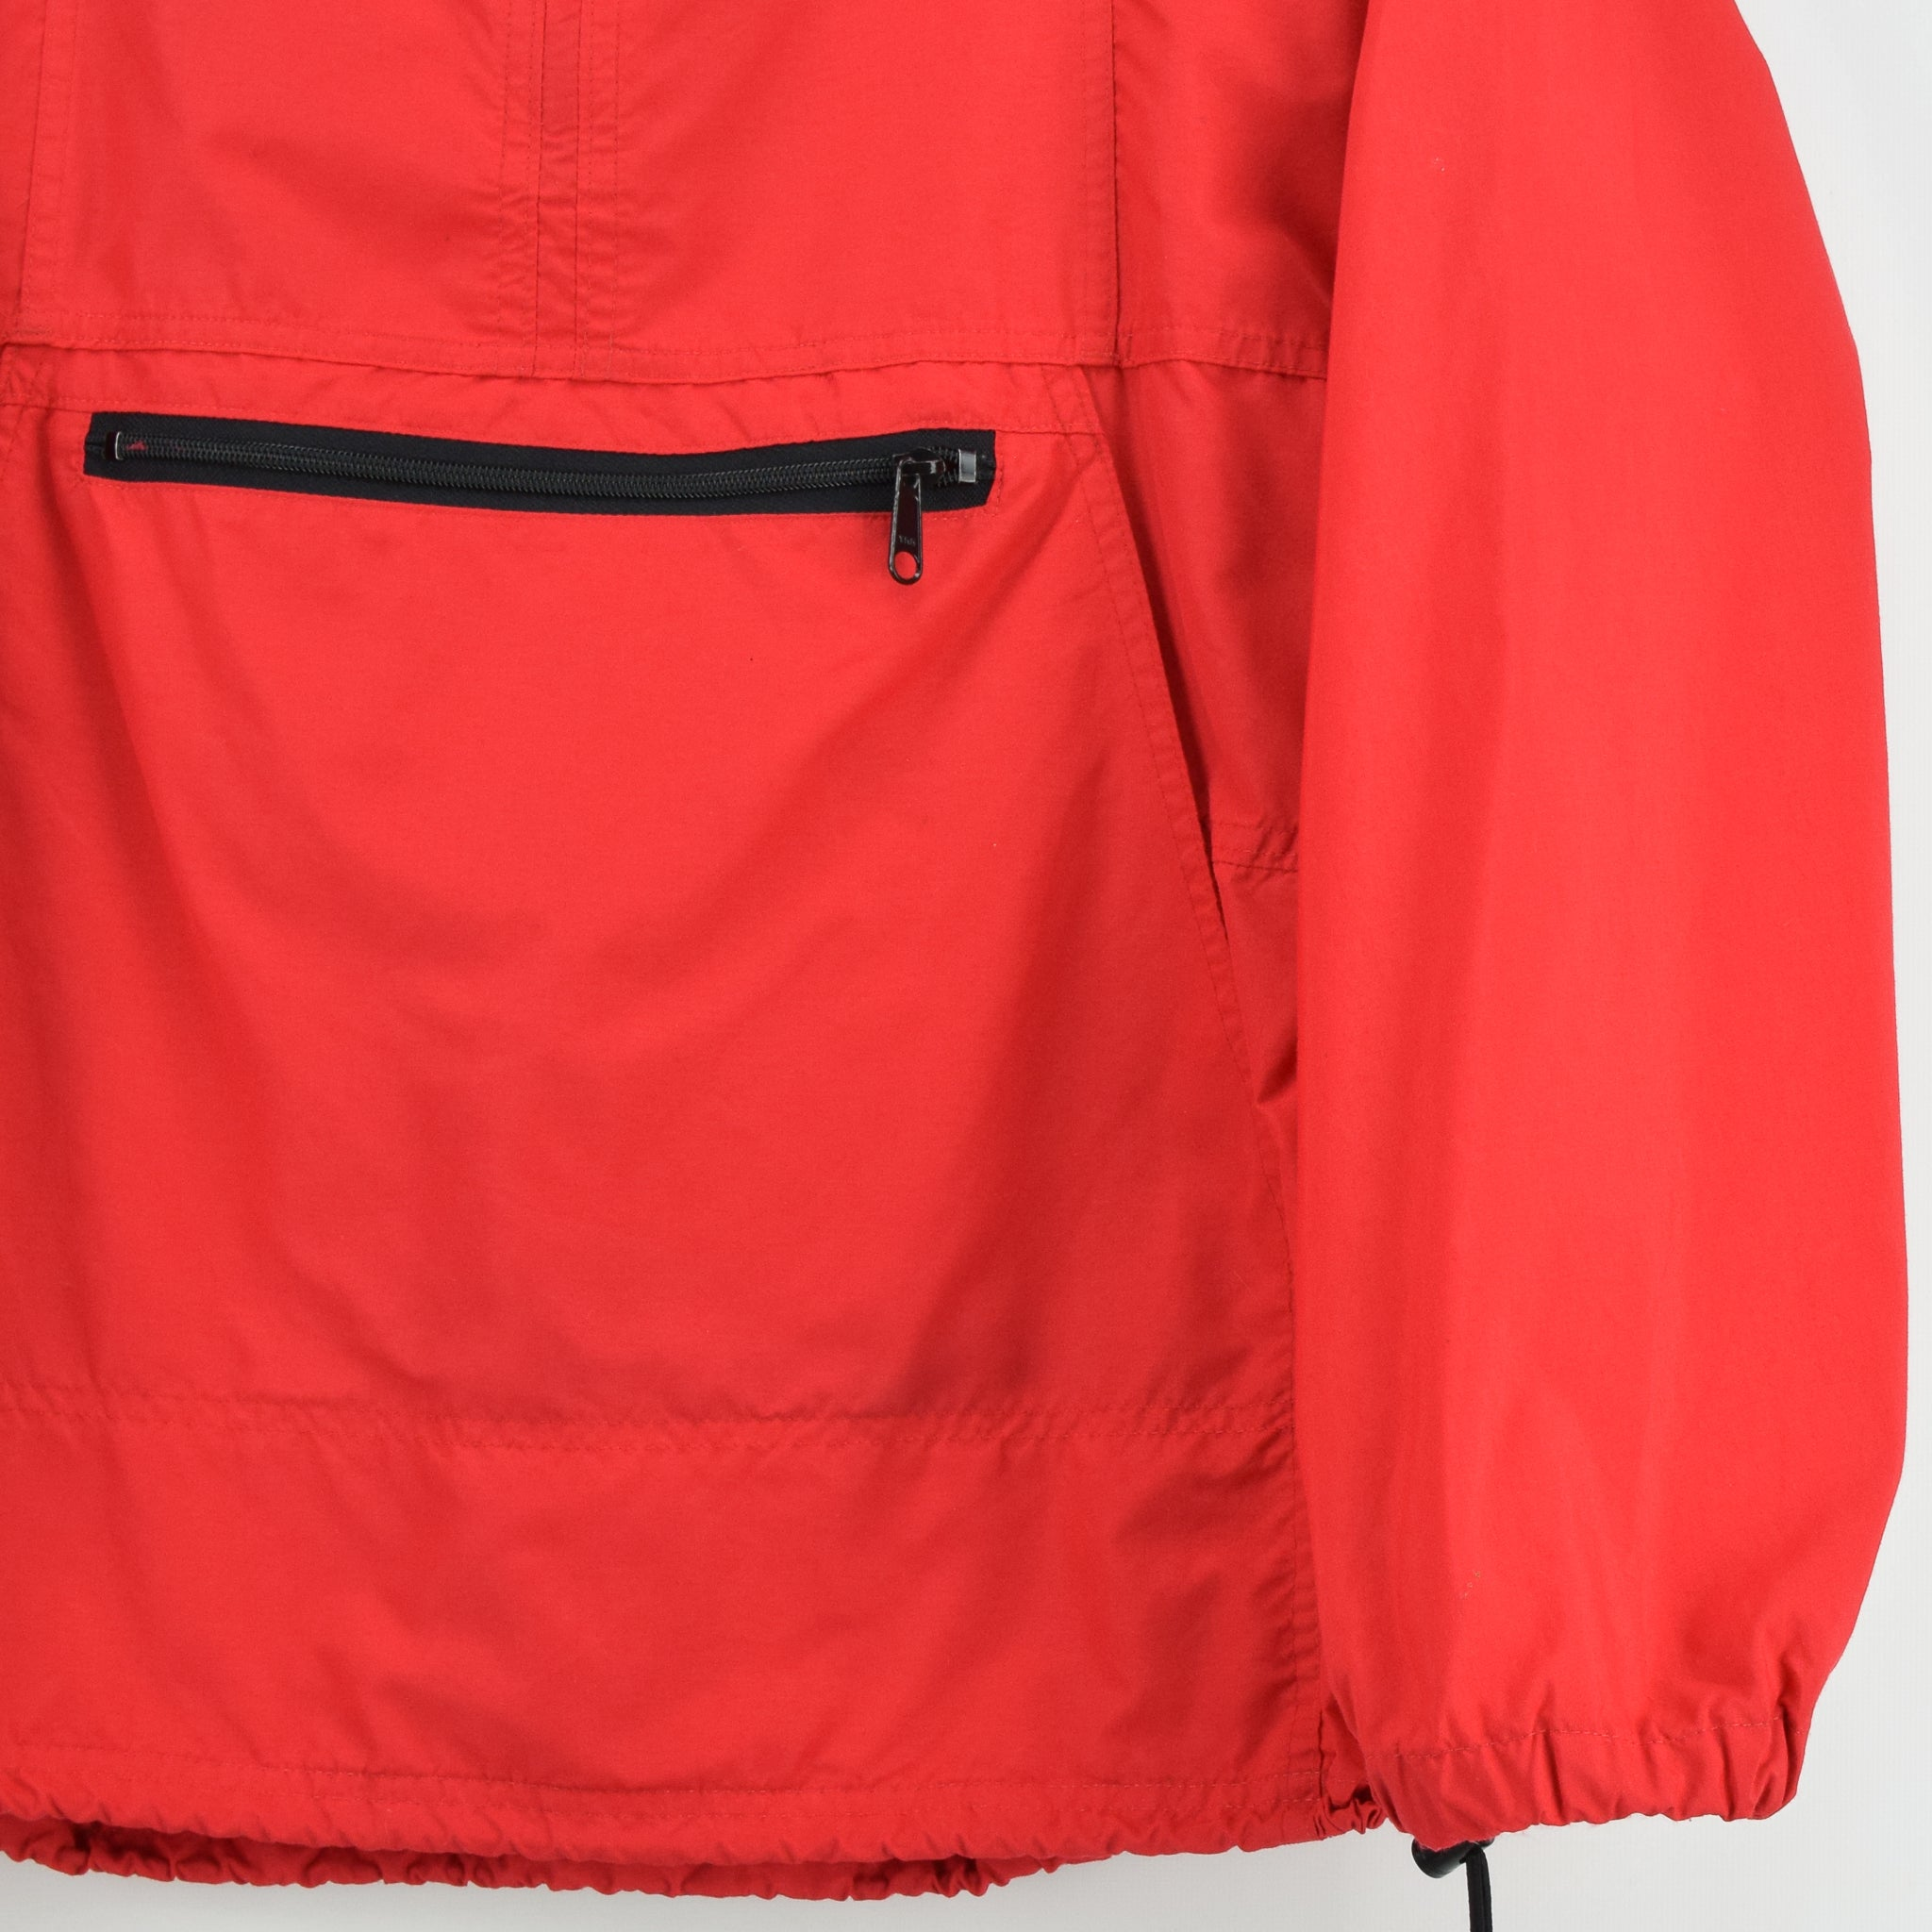 Vintage LL Bean Red Hooded Nylon Cagoule Unisex Jacket Made in USA S front hem